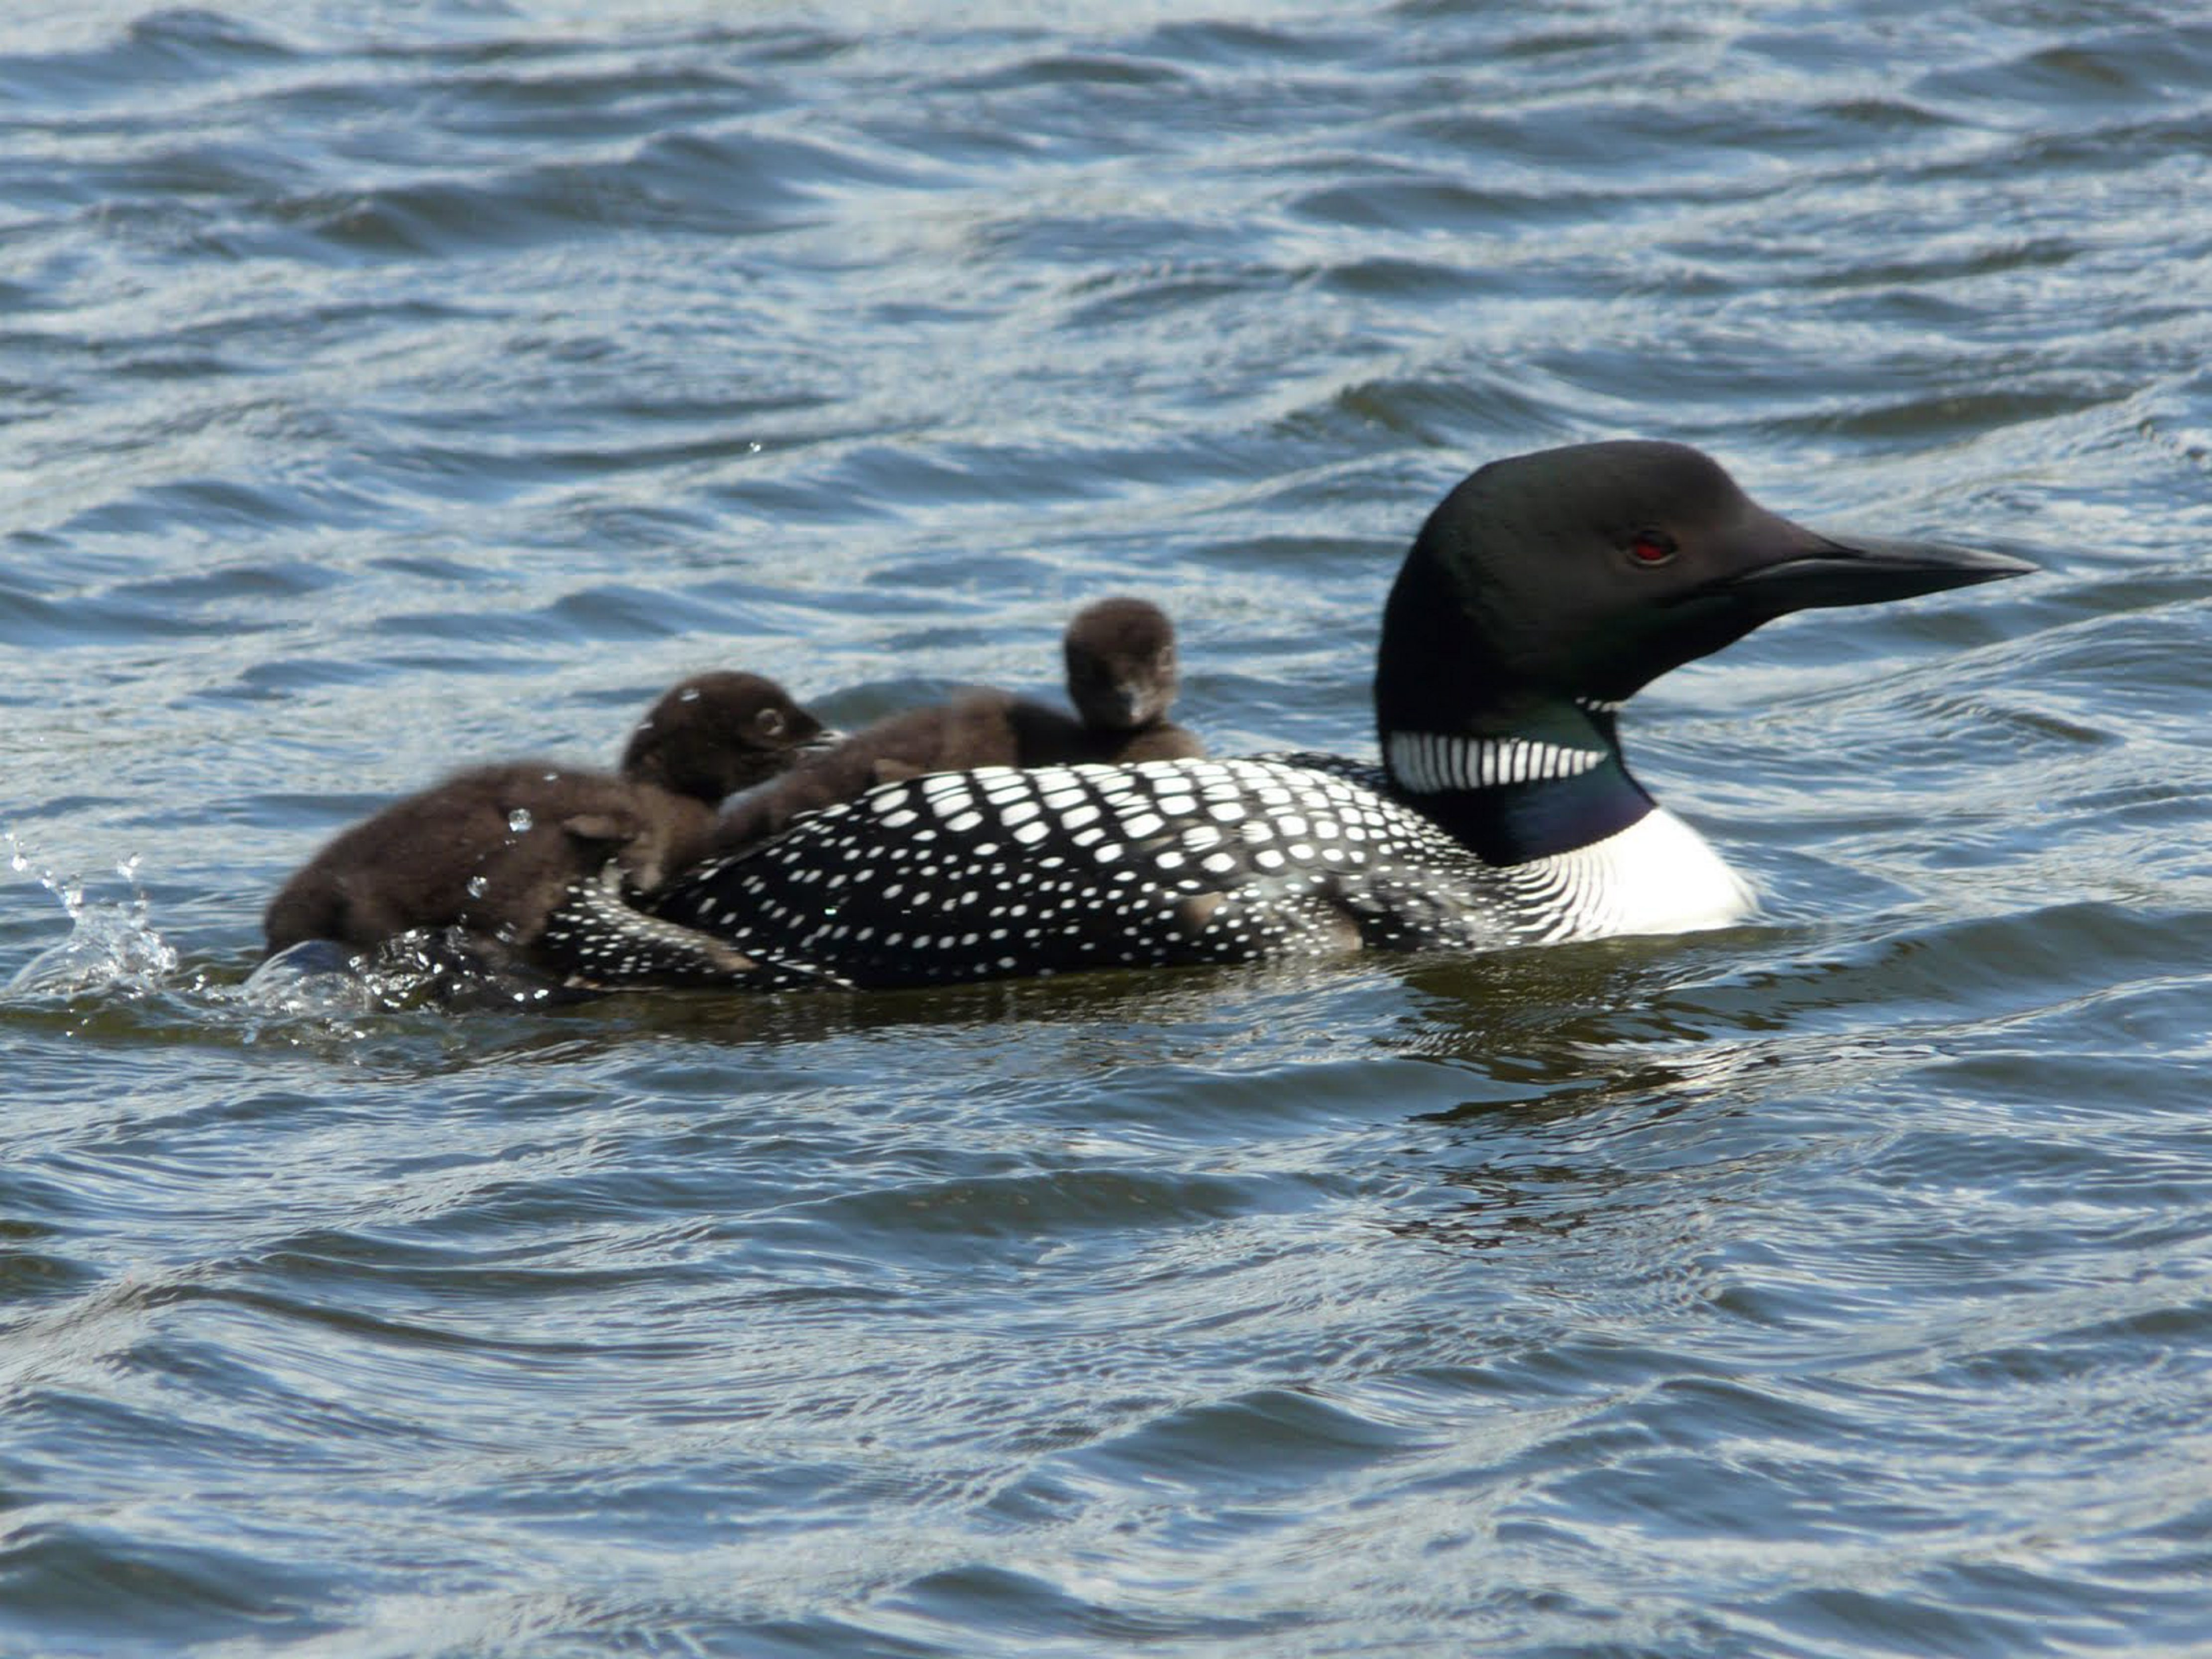 Common loons are being poisoned.